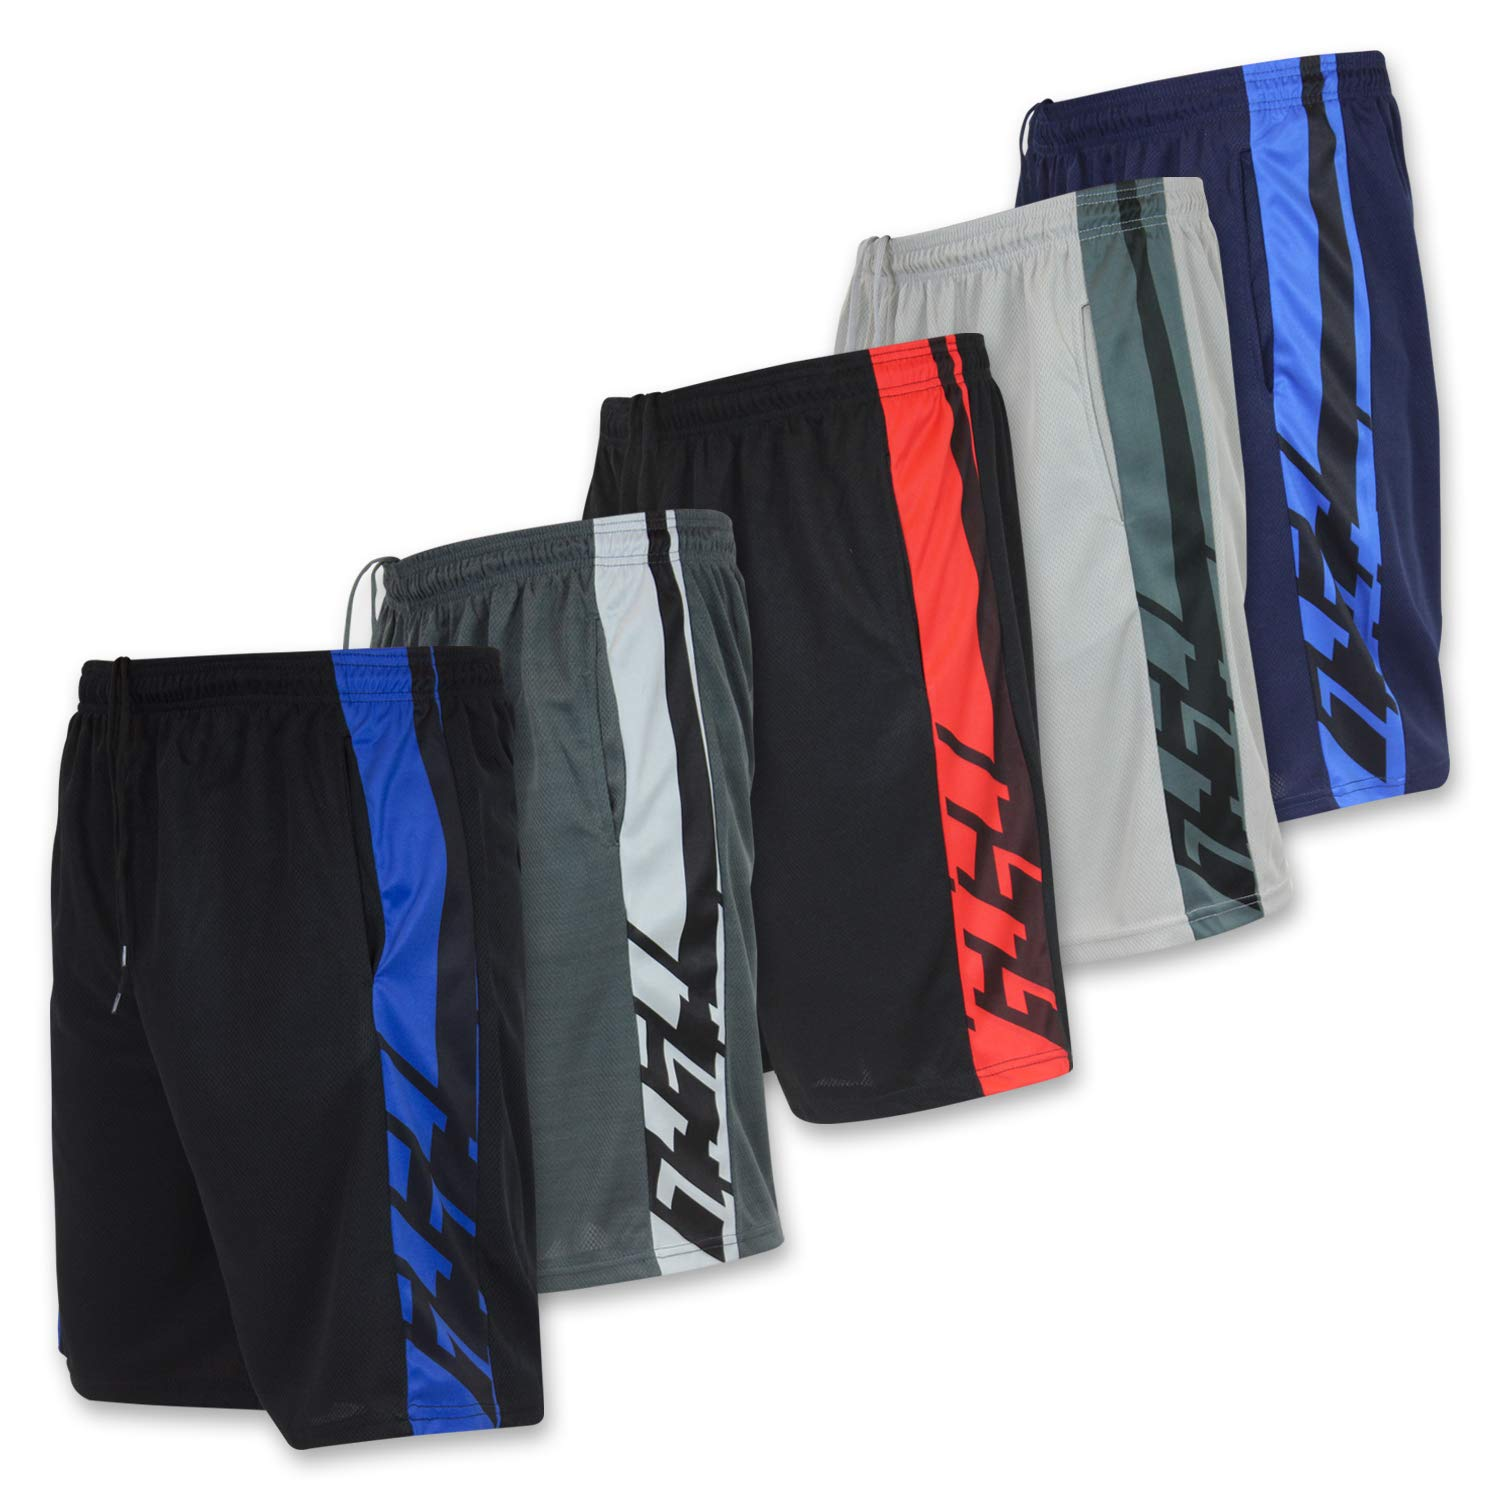 Men's Mesh Active Athletic Basketball Essentials Performance Gym Workout Clothes Sport Shorts Quick Dry - Set 2-5 Pack, S